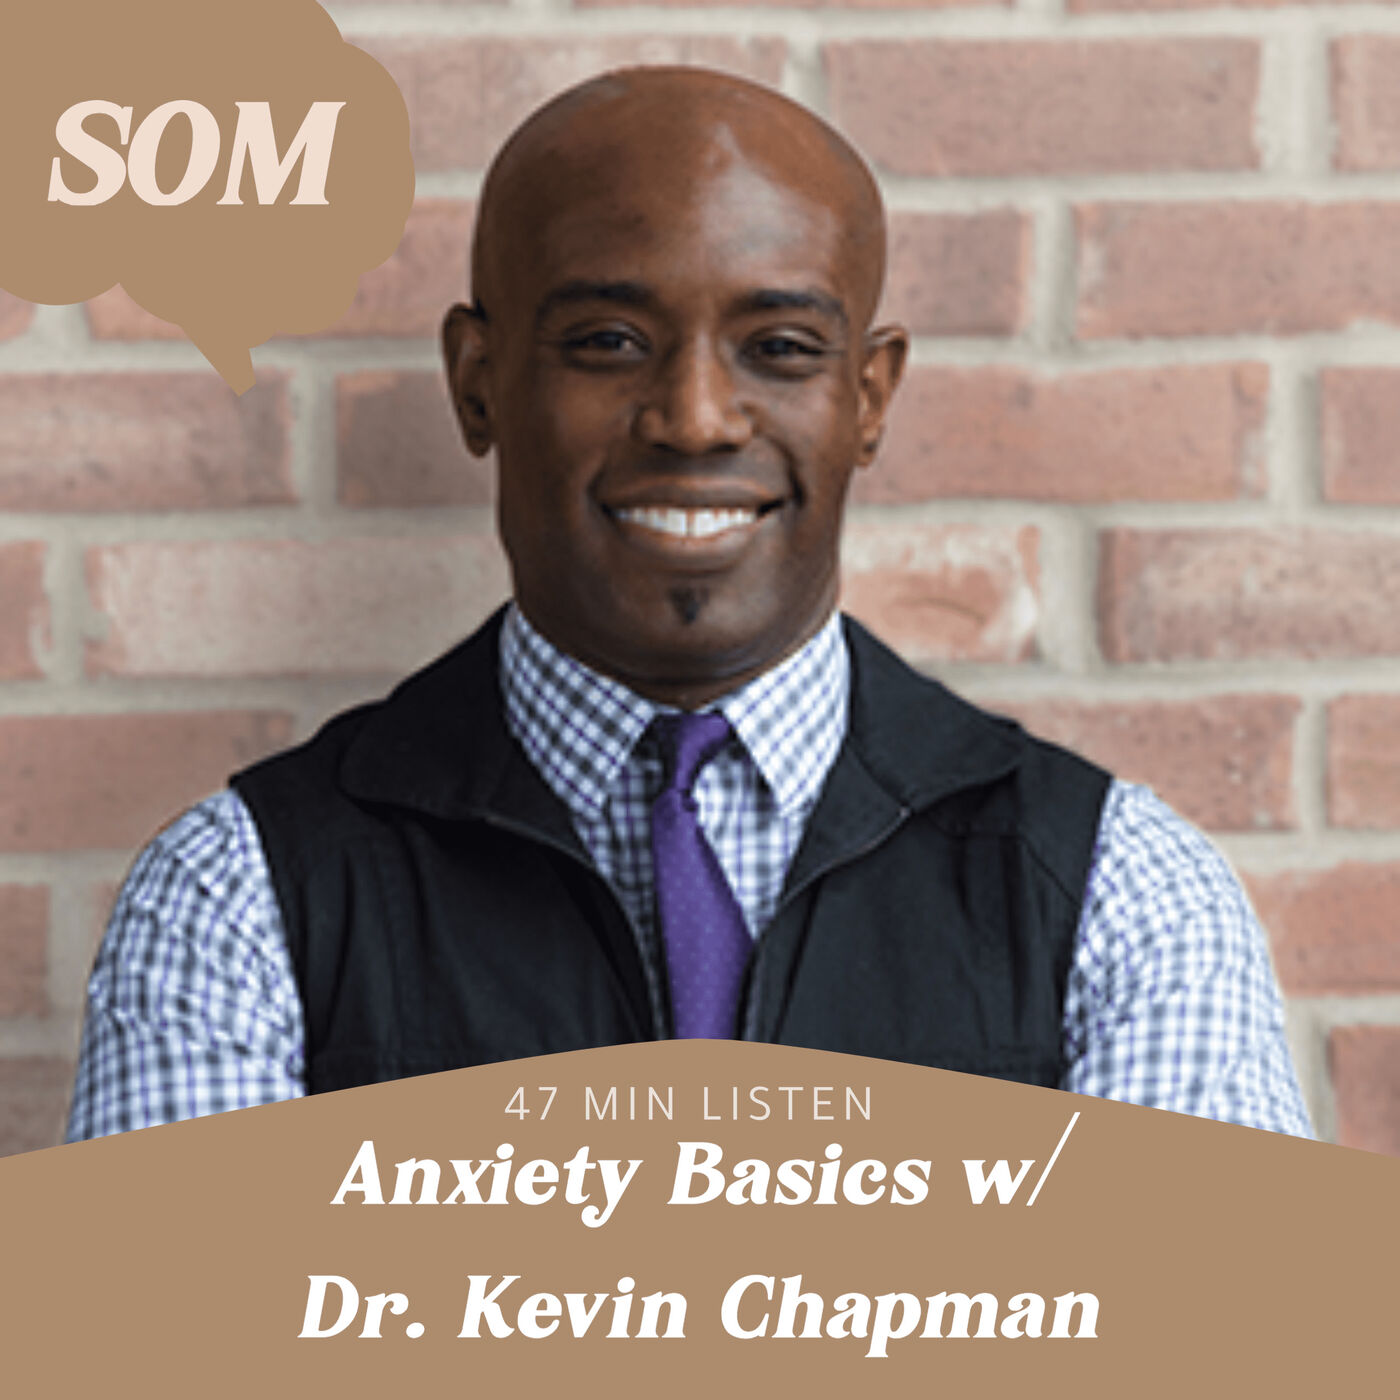 Anxiety Basics w/ Dr. Kevin Chapman